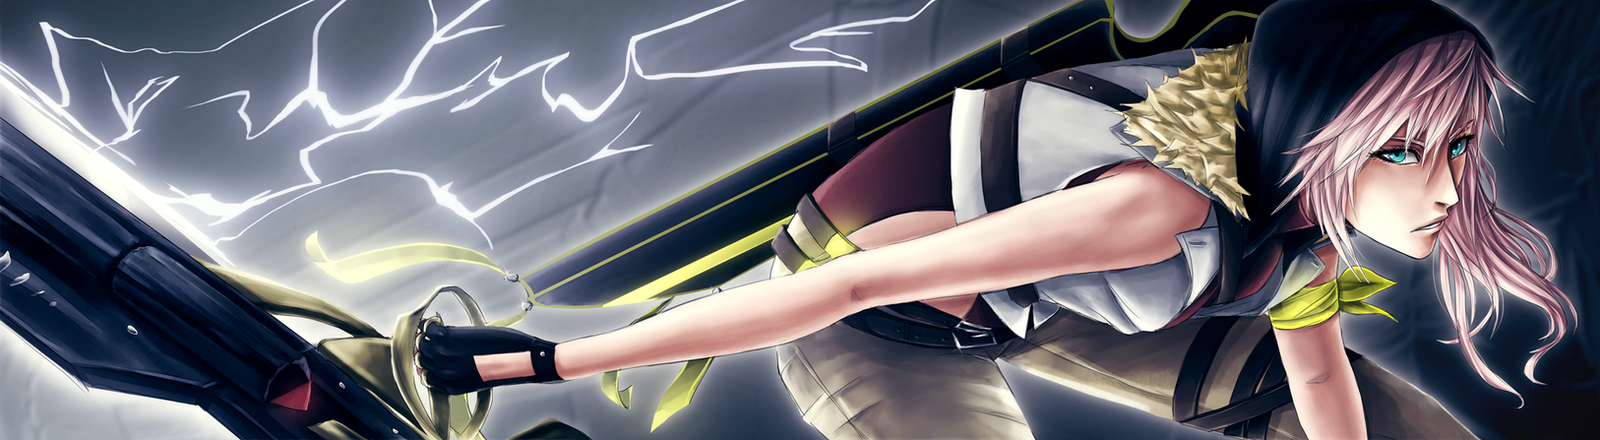 Lightning Returns: FFXIII Contest Entry by Sing-sei